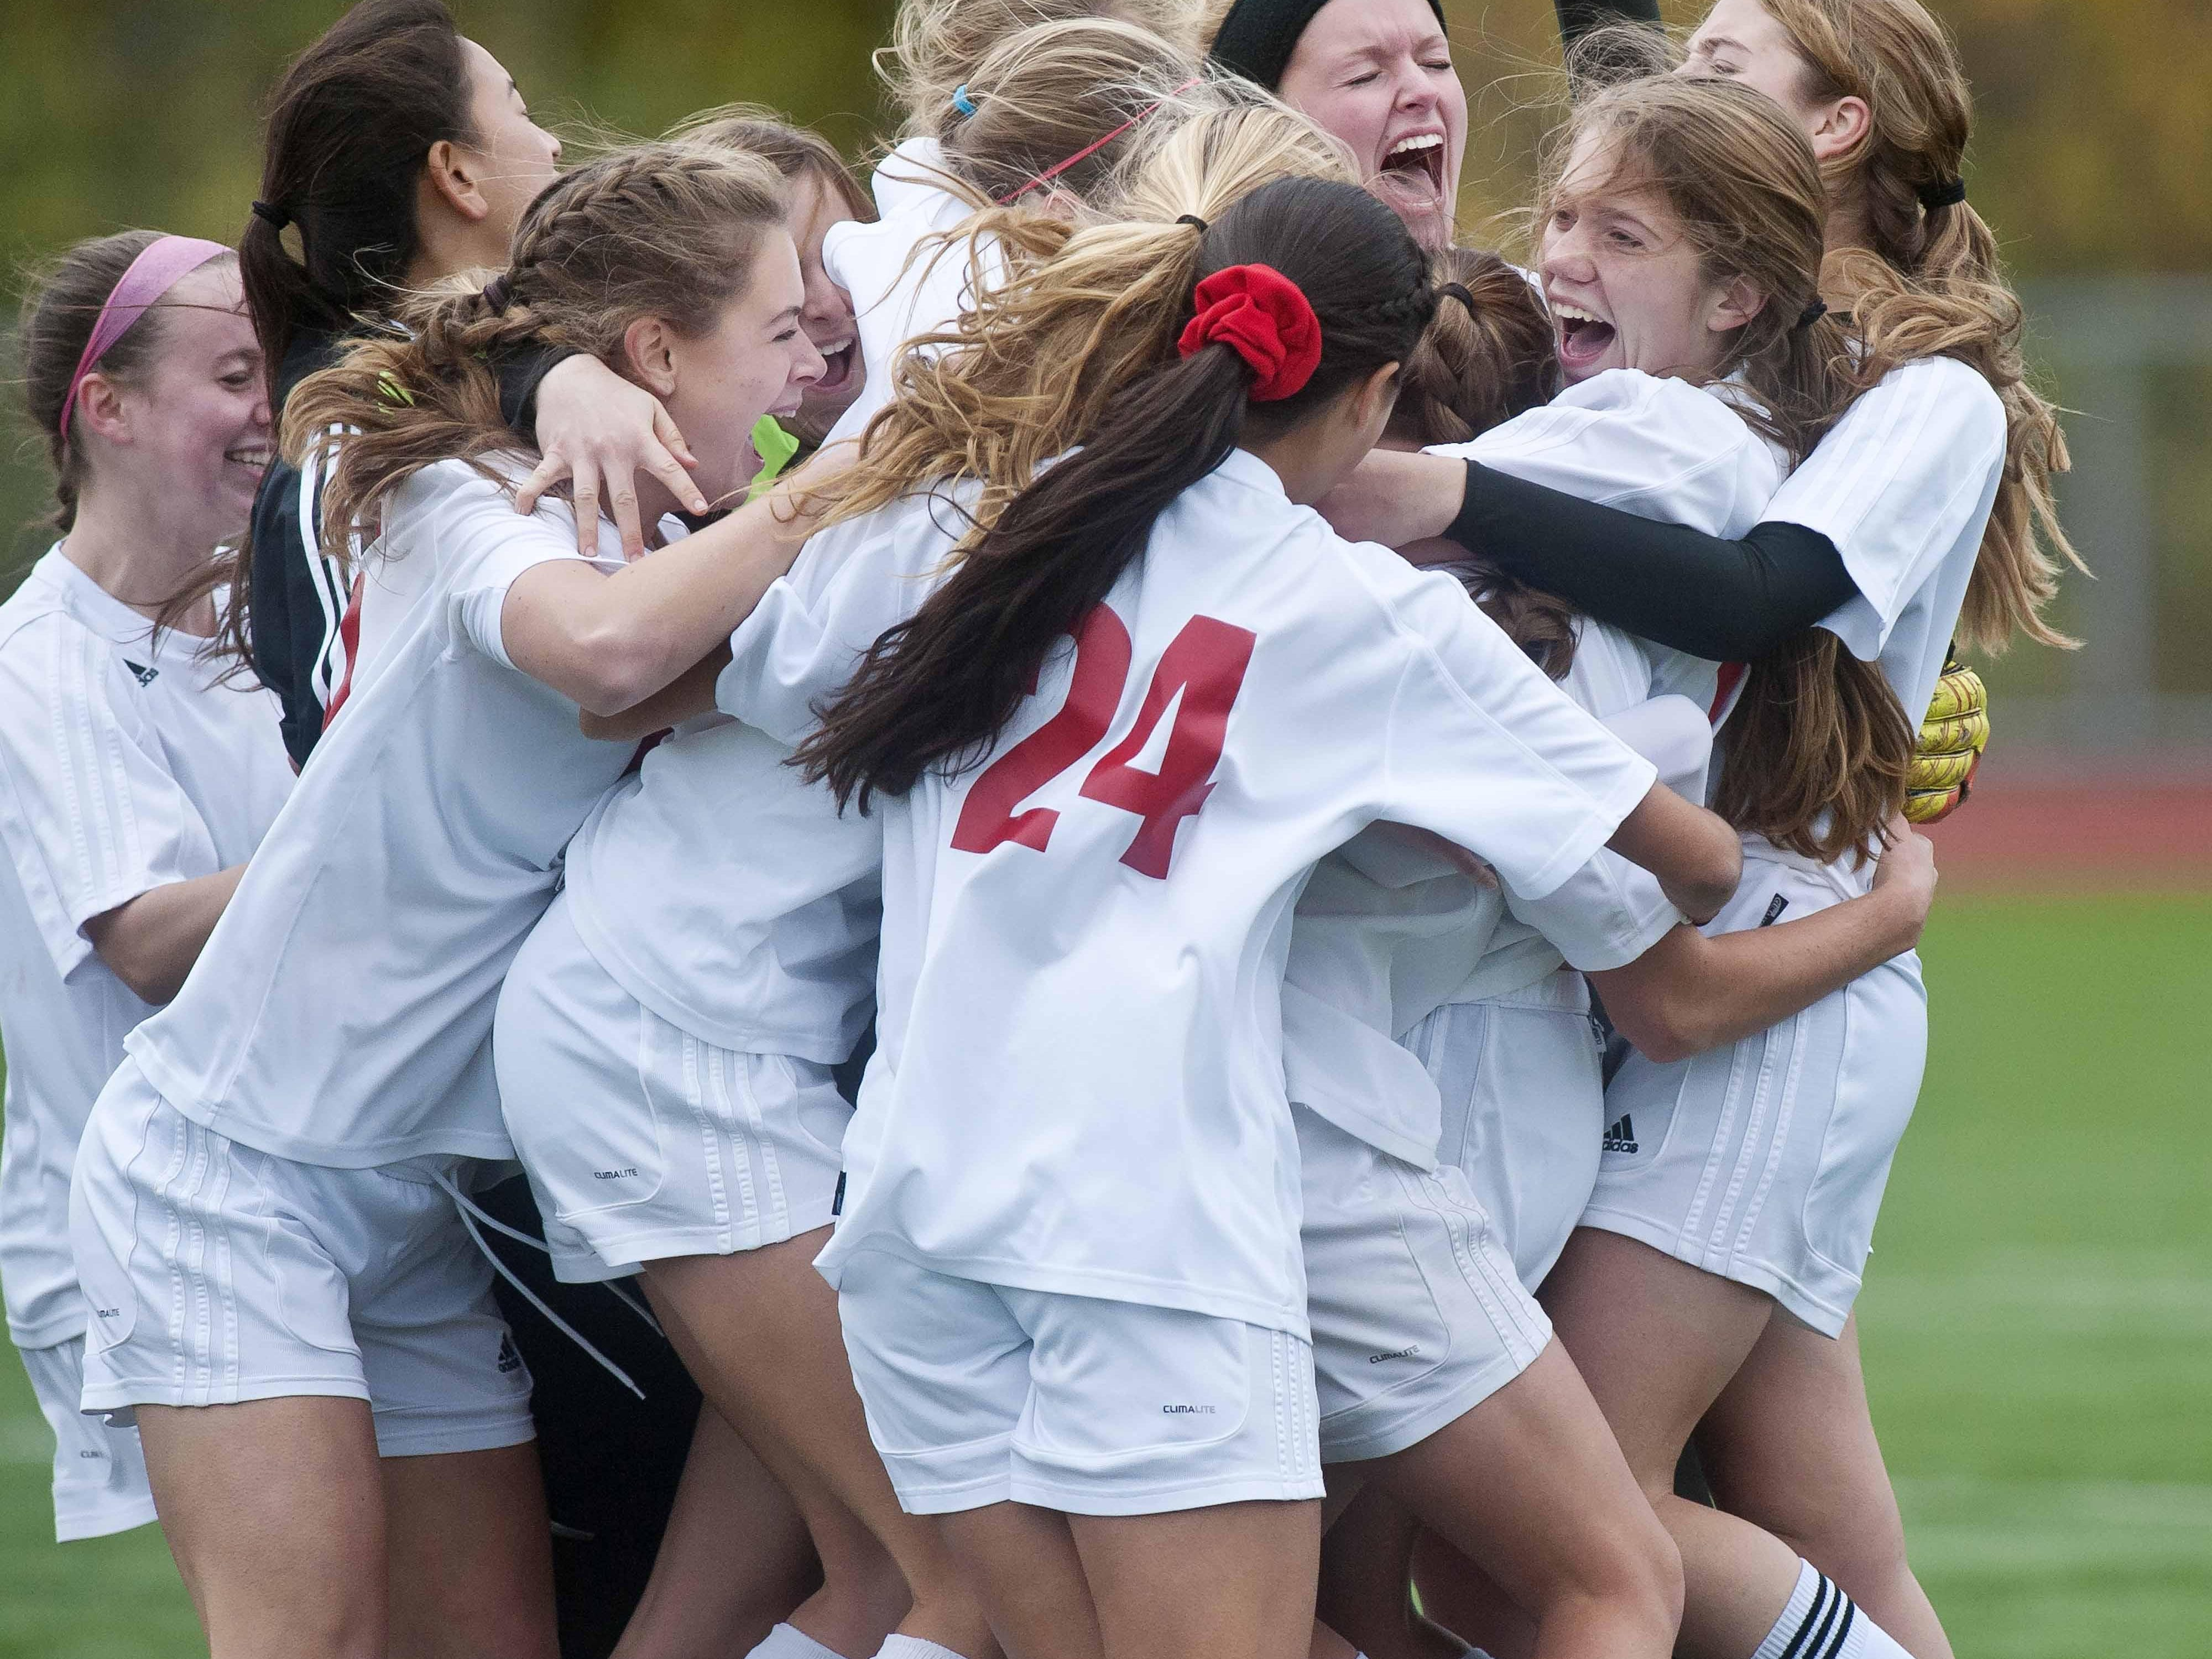 CVU's players celebrate their victory over Burlington during the Girls' Division 1 state championship in Burlington on Saturday, November 31, 2014.